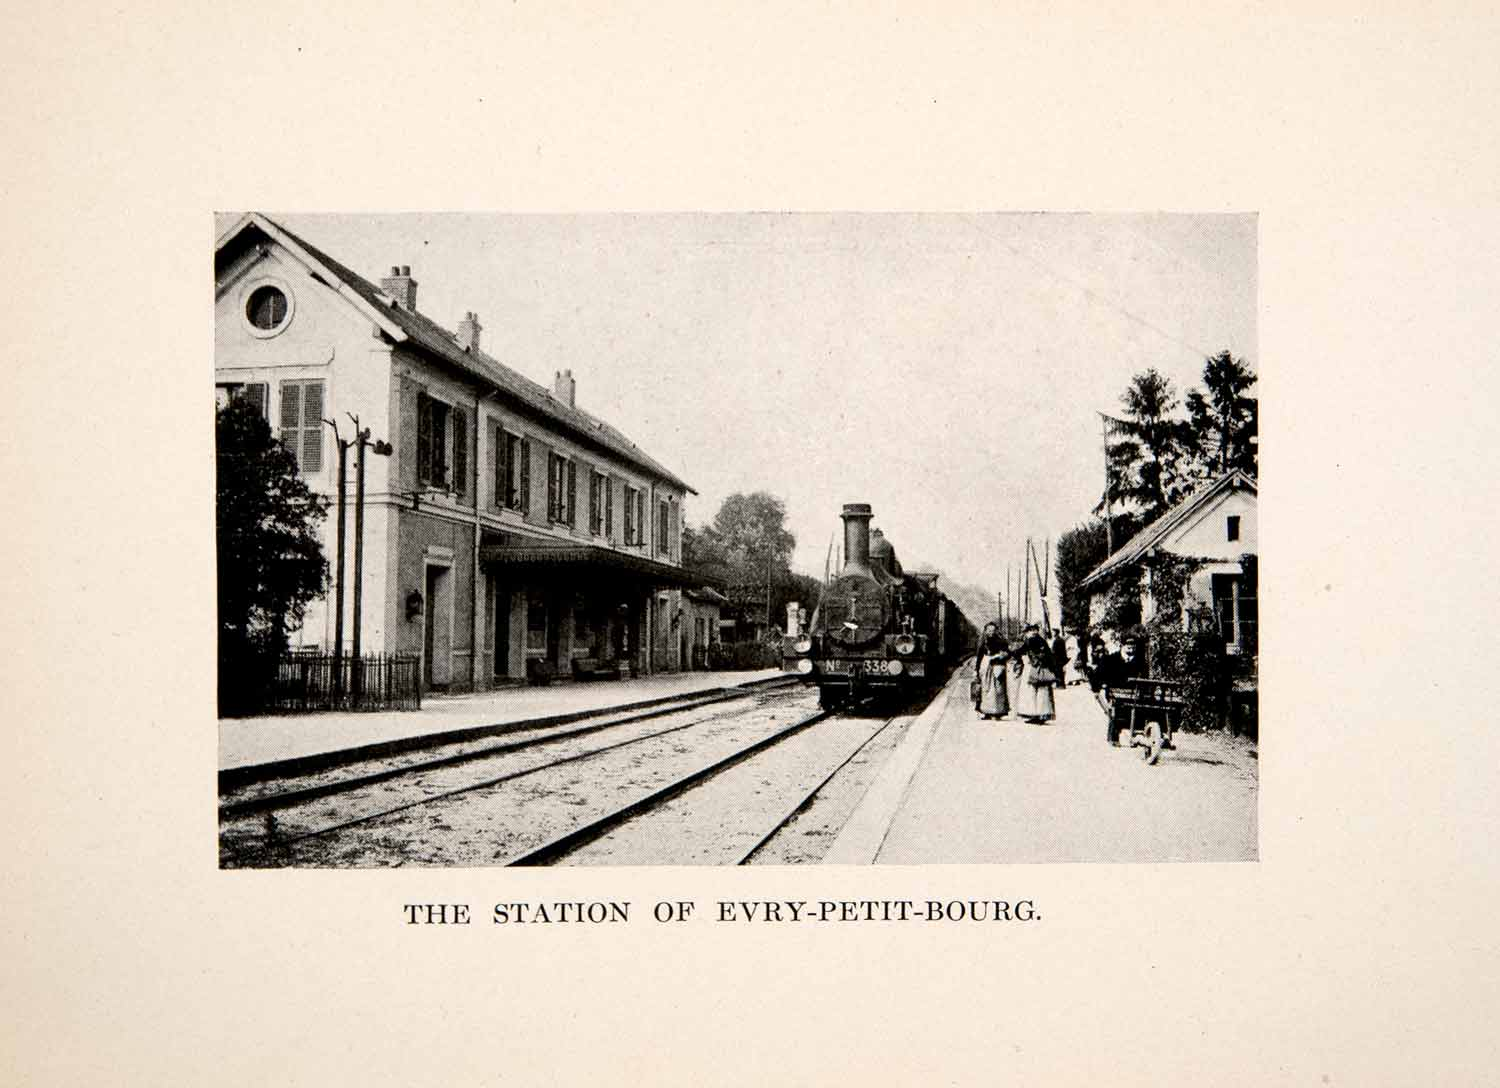 1915 Print Train Railway Station Evry-Petit-Bourg France Cityscape Travel XGYB2